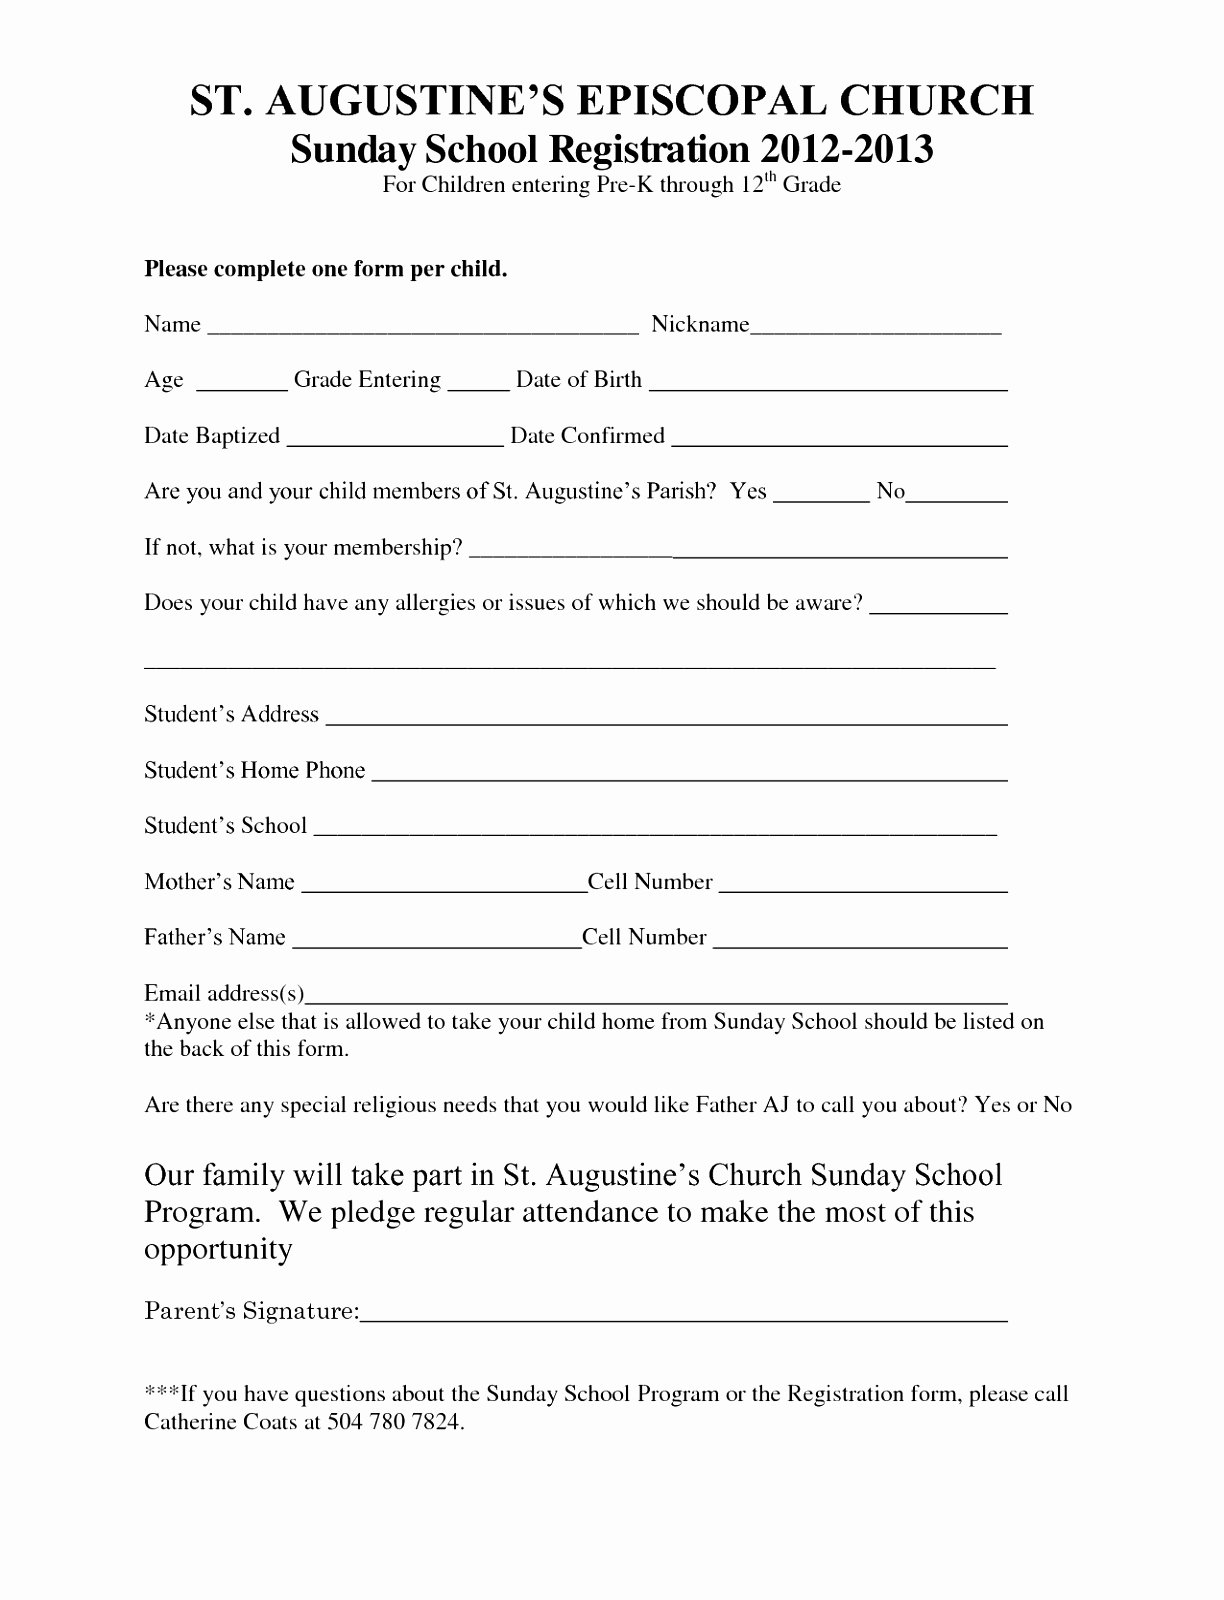 Printable Registration form Template Awesome 7 Sunday School Registration form Template Cutei